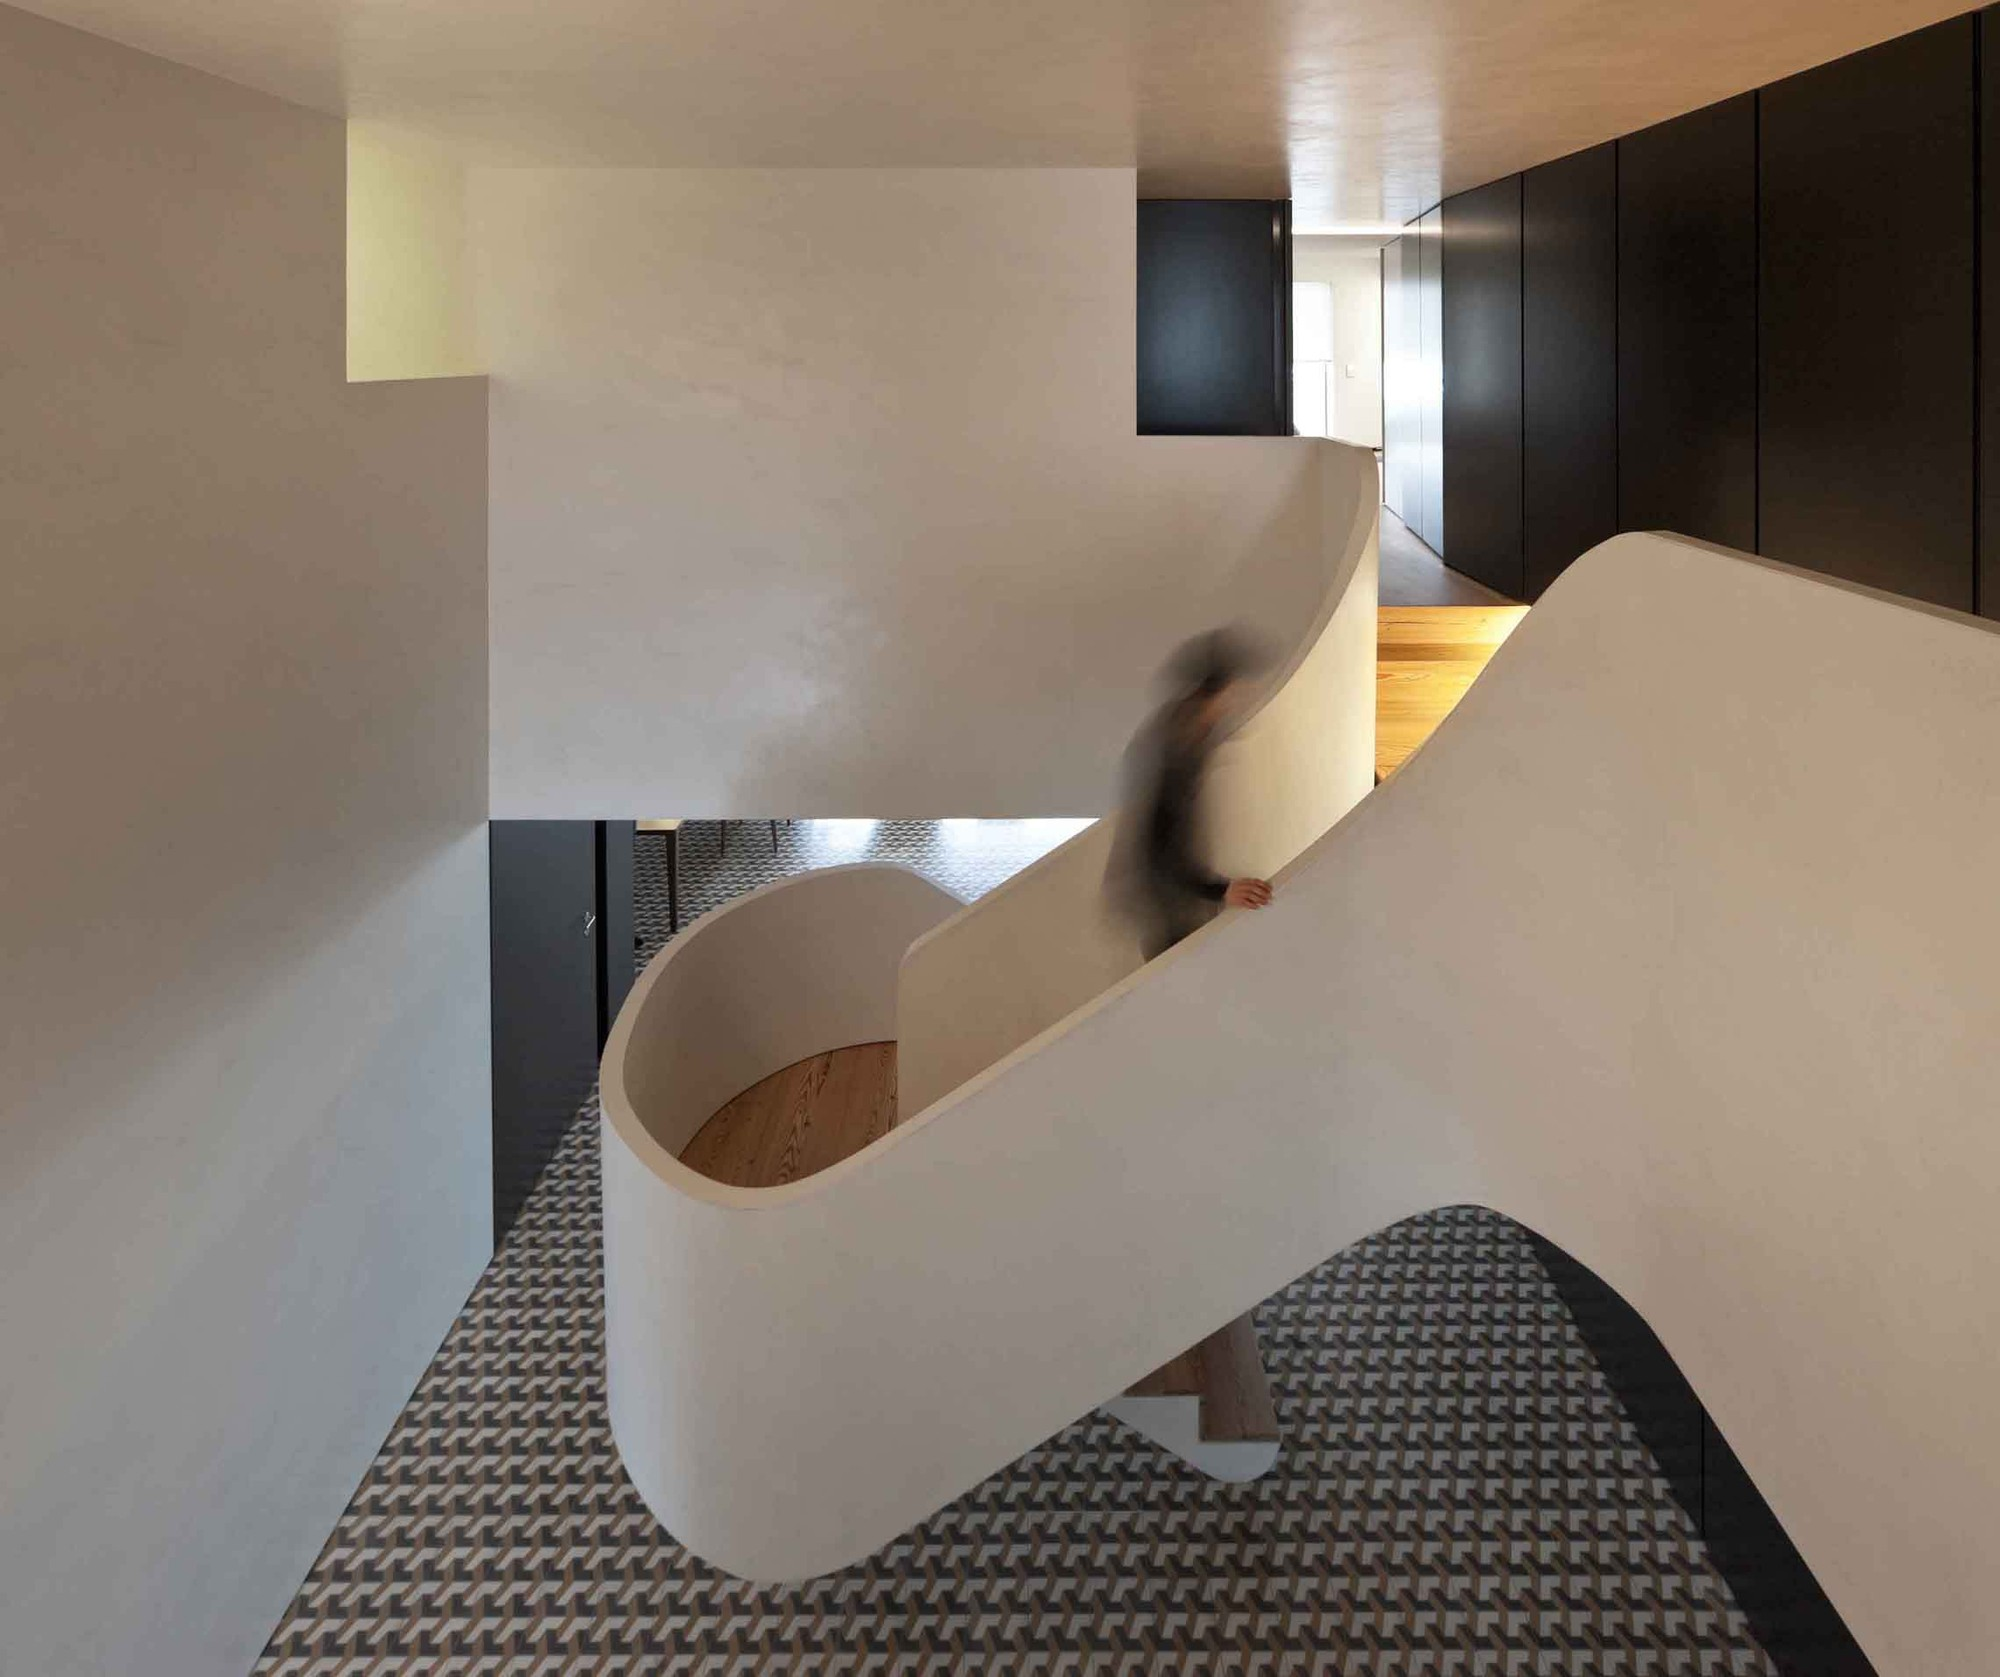 Rehabilitation of an Apartment / CorreiaRagazzi arquitectos, © Luís Ferreira Alves